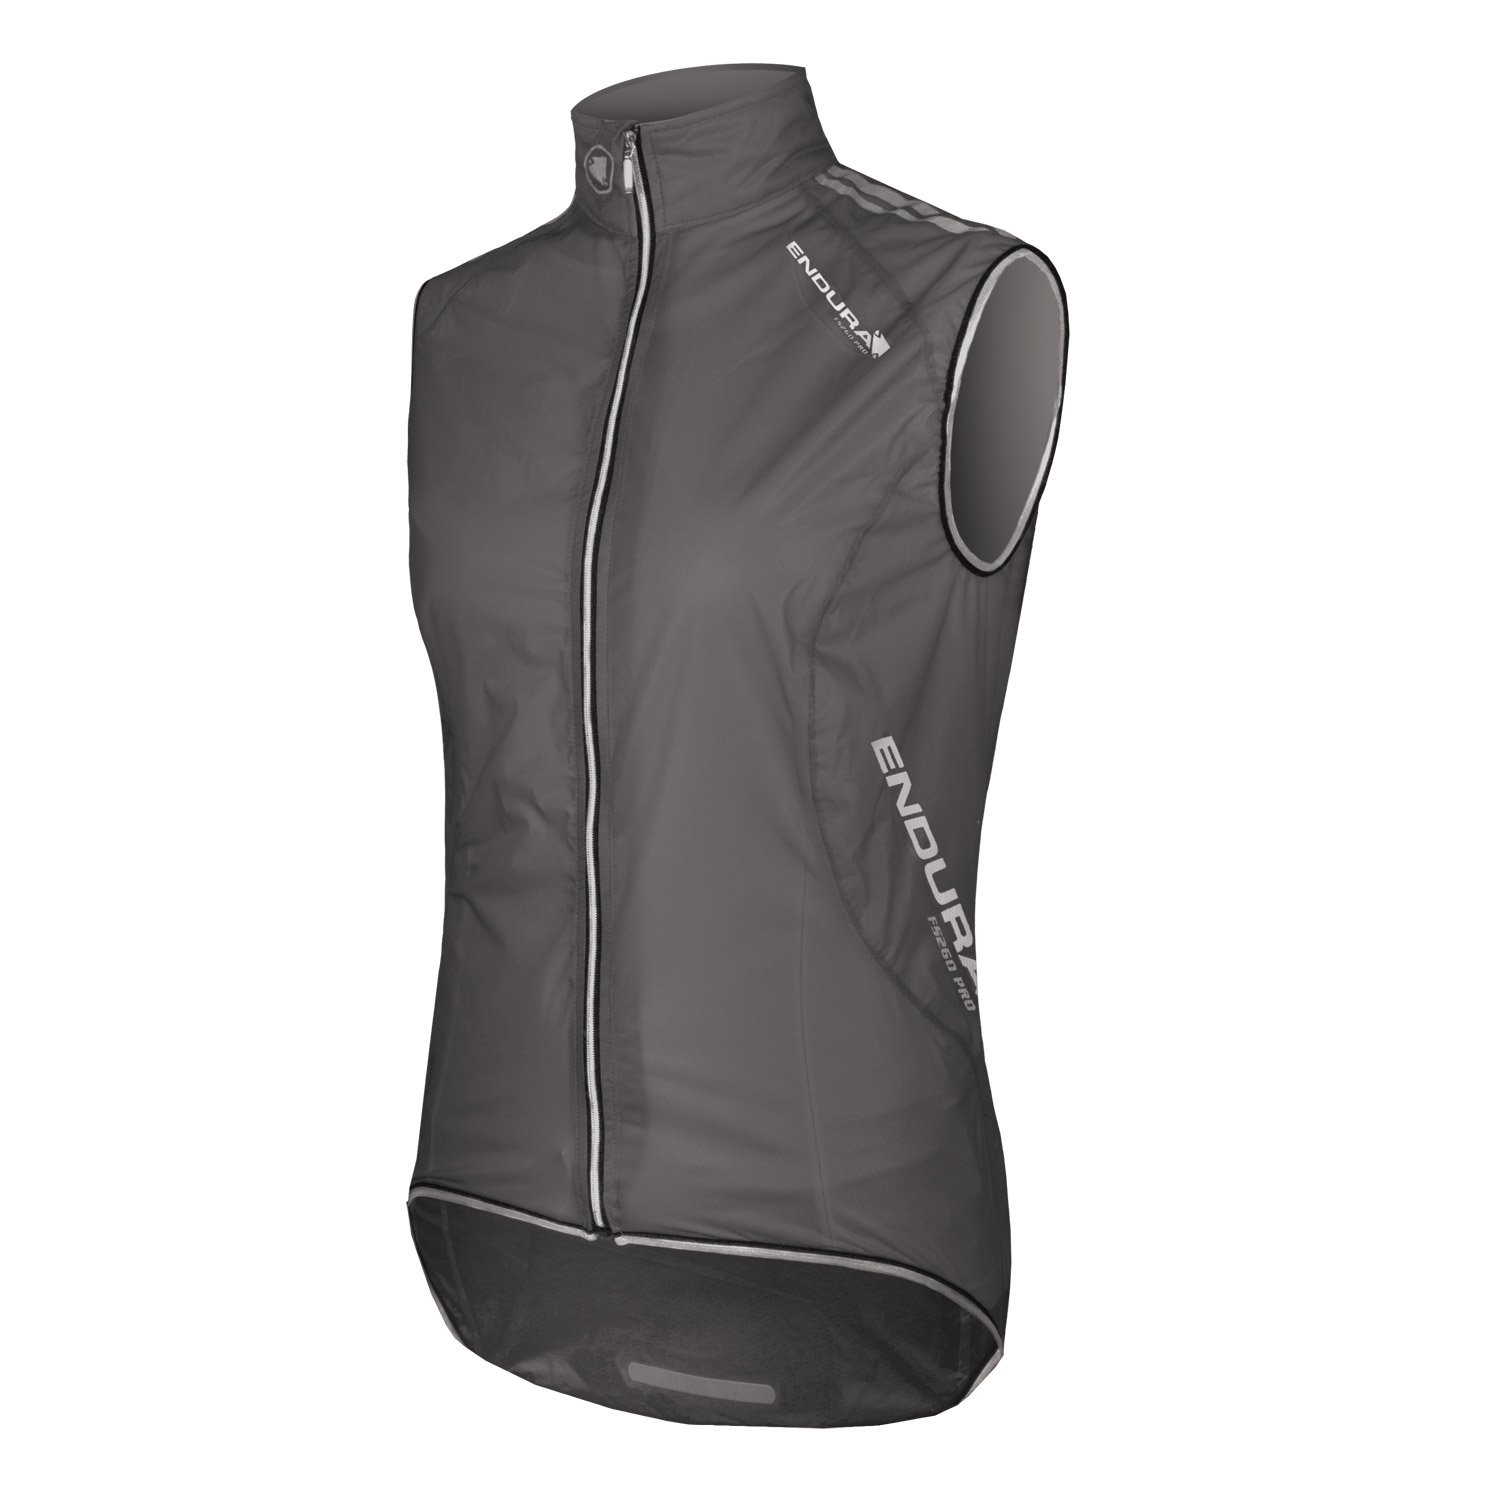 Endura Womens FS260-Pro Adrenaline Cycling Gilet Translucent Black, Small